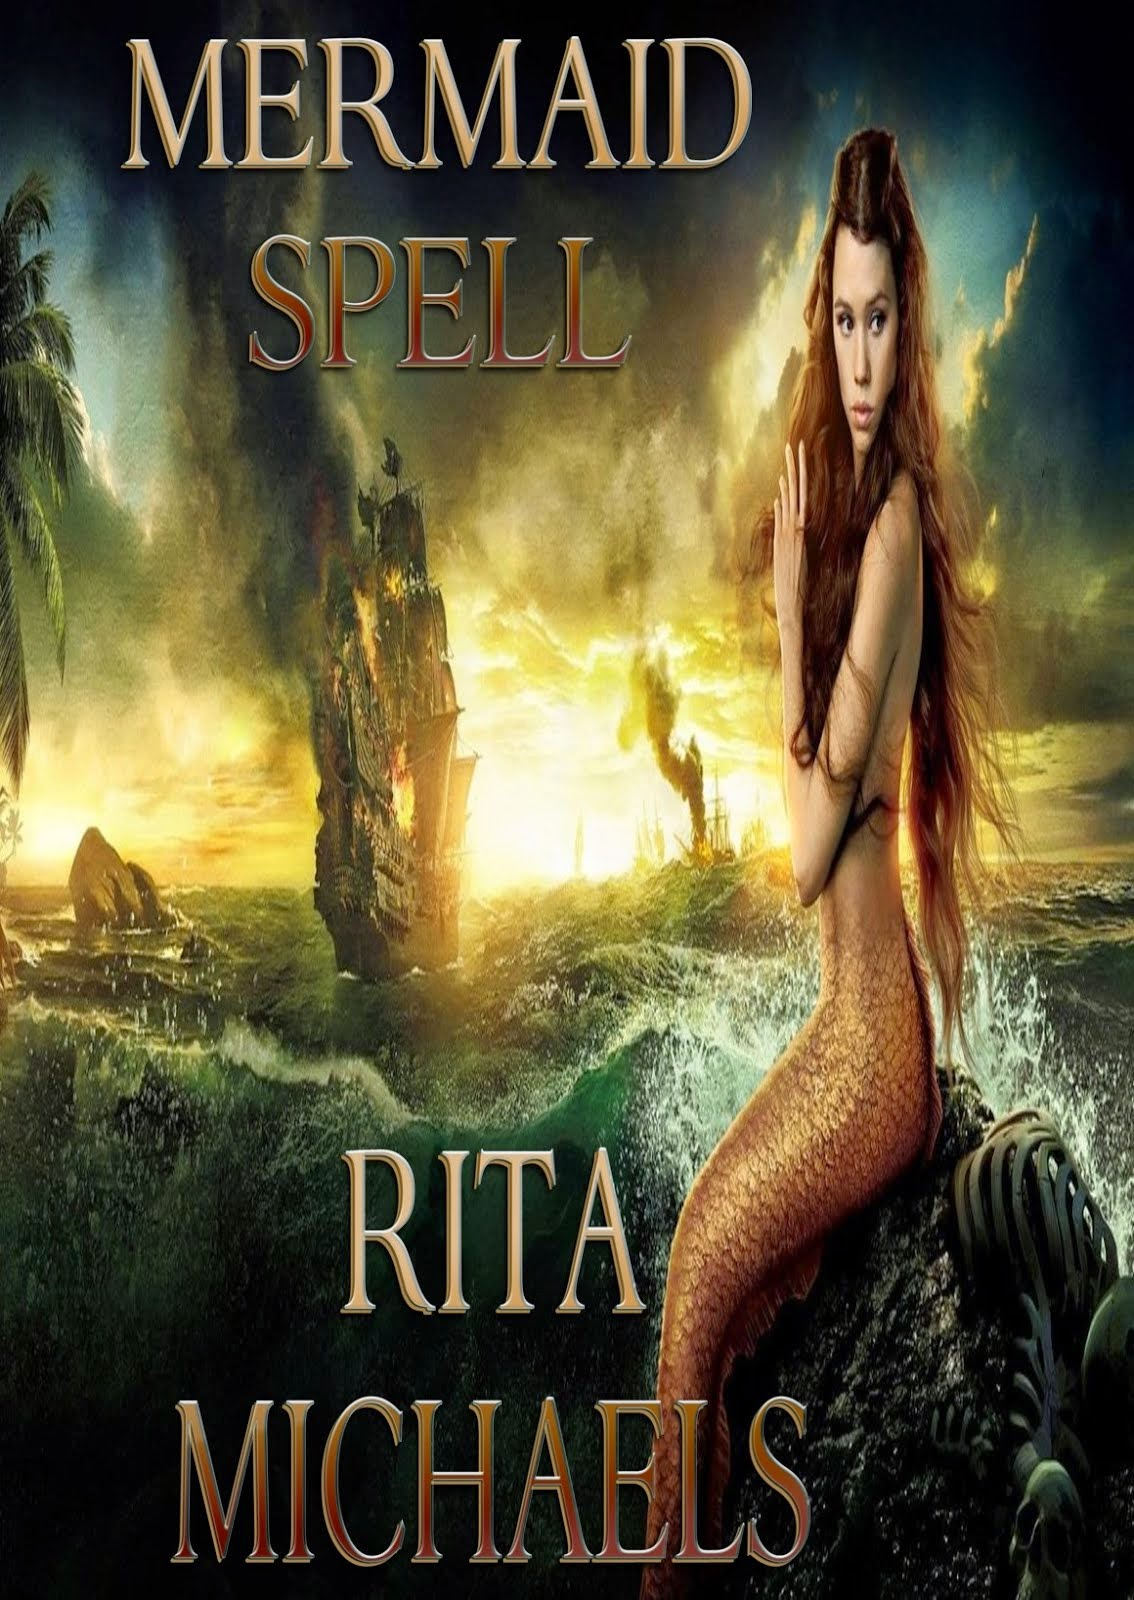 Mermaid Spell